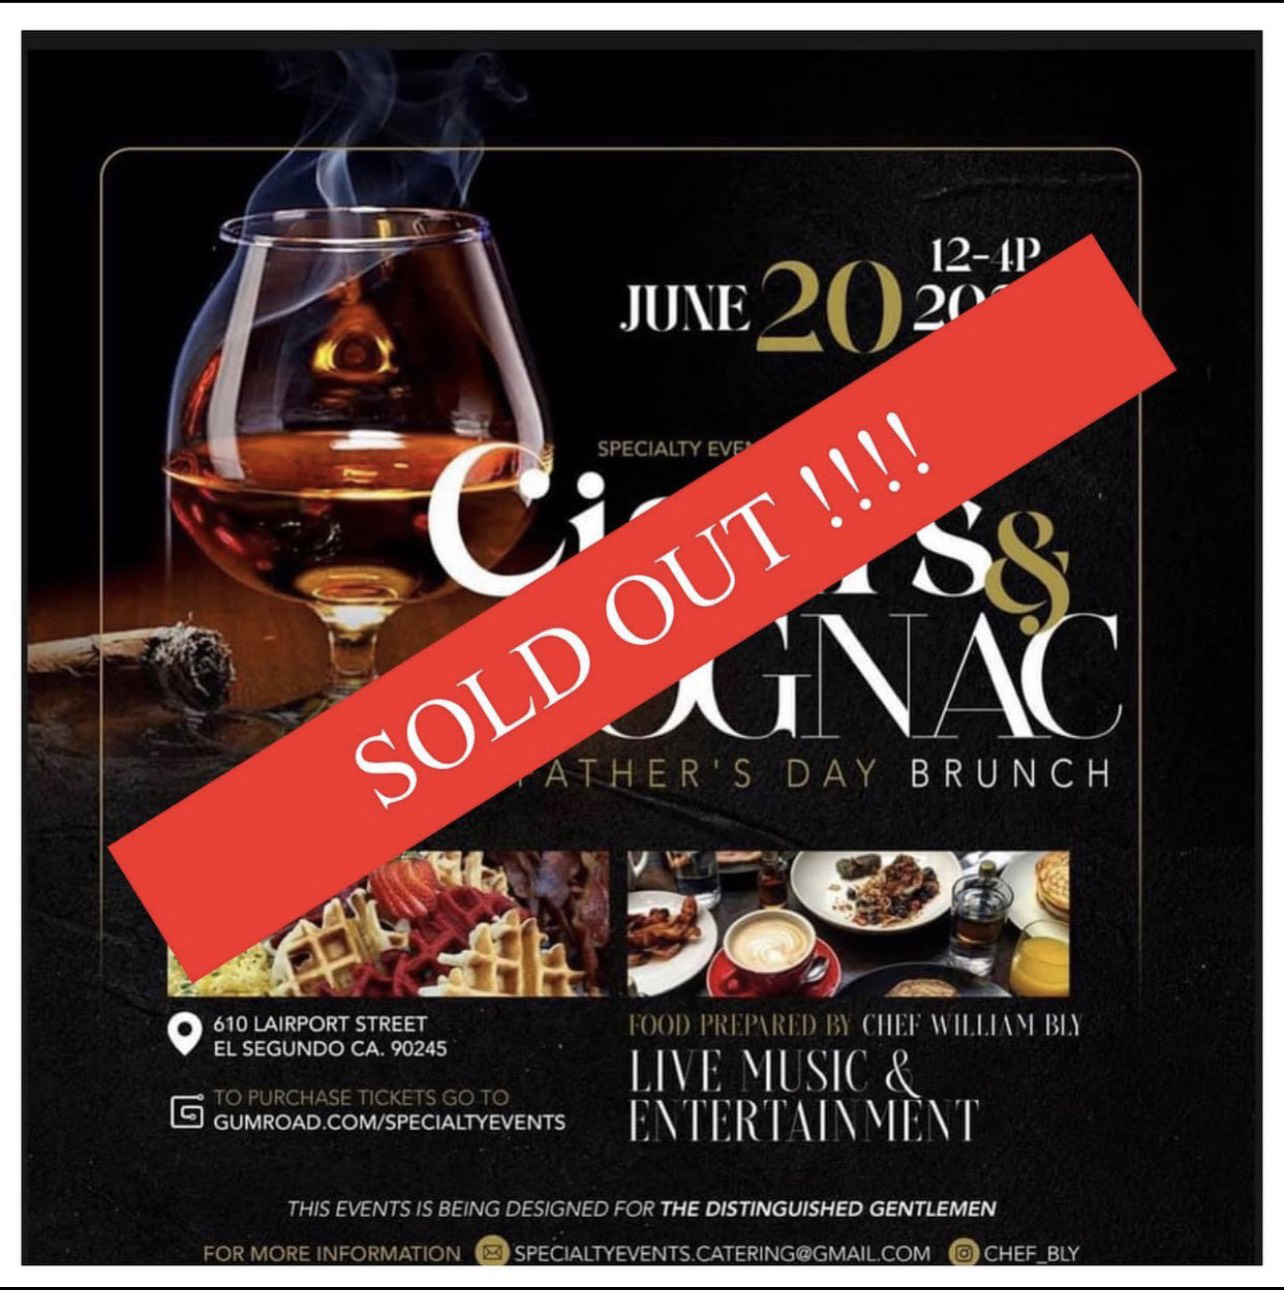 Sunday Brunch Sold Out